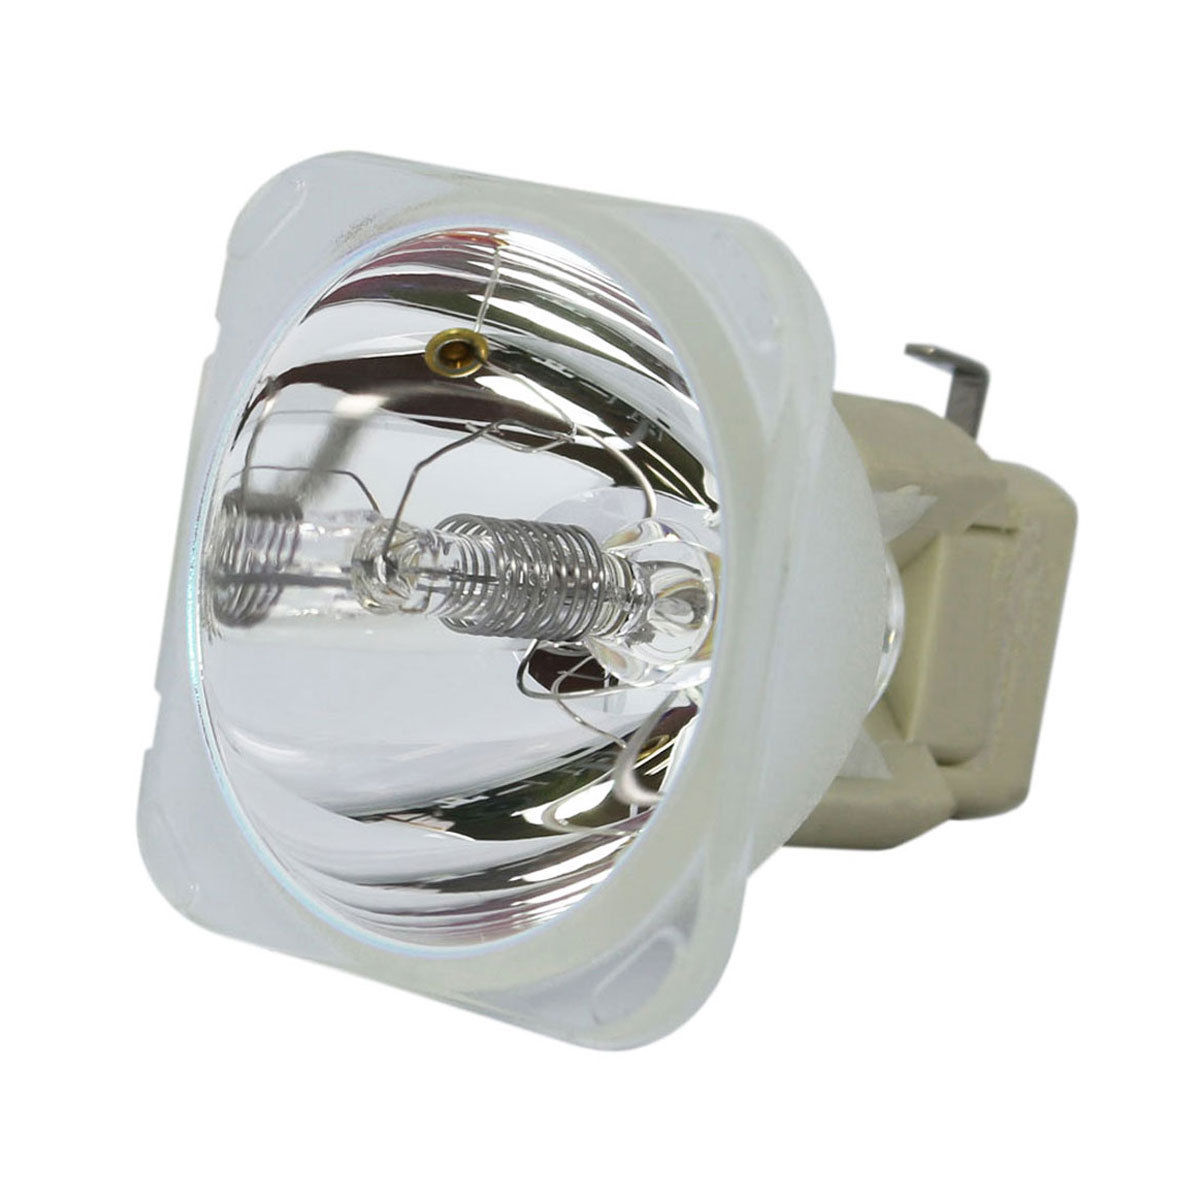 все цены на  Compatible Bare Bulb BL-FS220A BLFS220A SP.86S01GC01 for Optoma DP7259 / EP770 / TX770 Projector Lamp Bulb without housing  онлайн